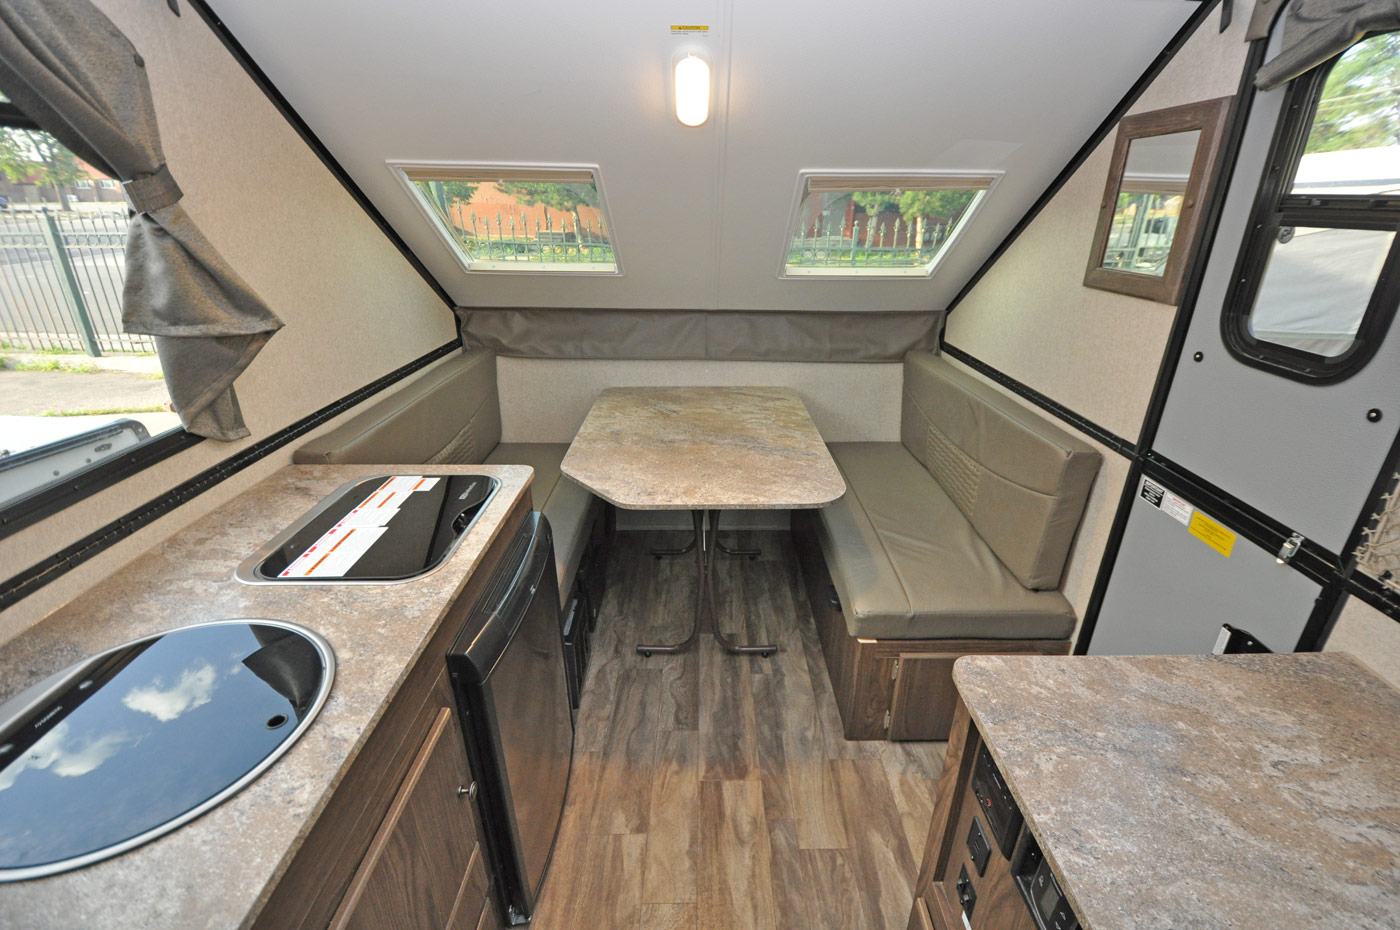 New Campers In Stock Roberts Sales Denver Colorado Likewise Rv Travel Trailer Water Plumbing Diagram Together With 30 Hot Package Exterior Shower Standard Flagstaff T21tbhwse Floorplan 21185